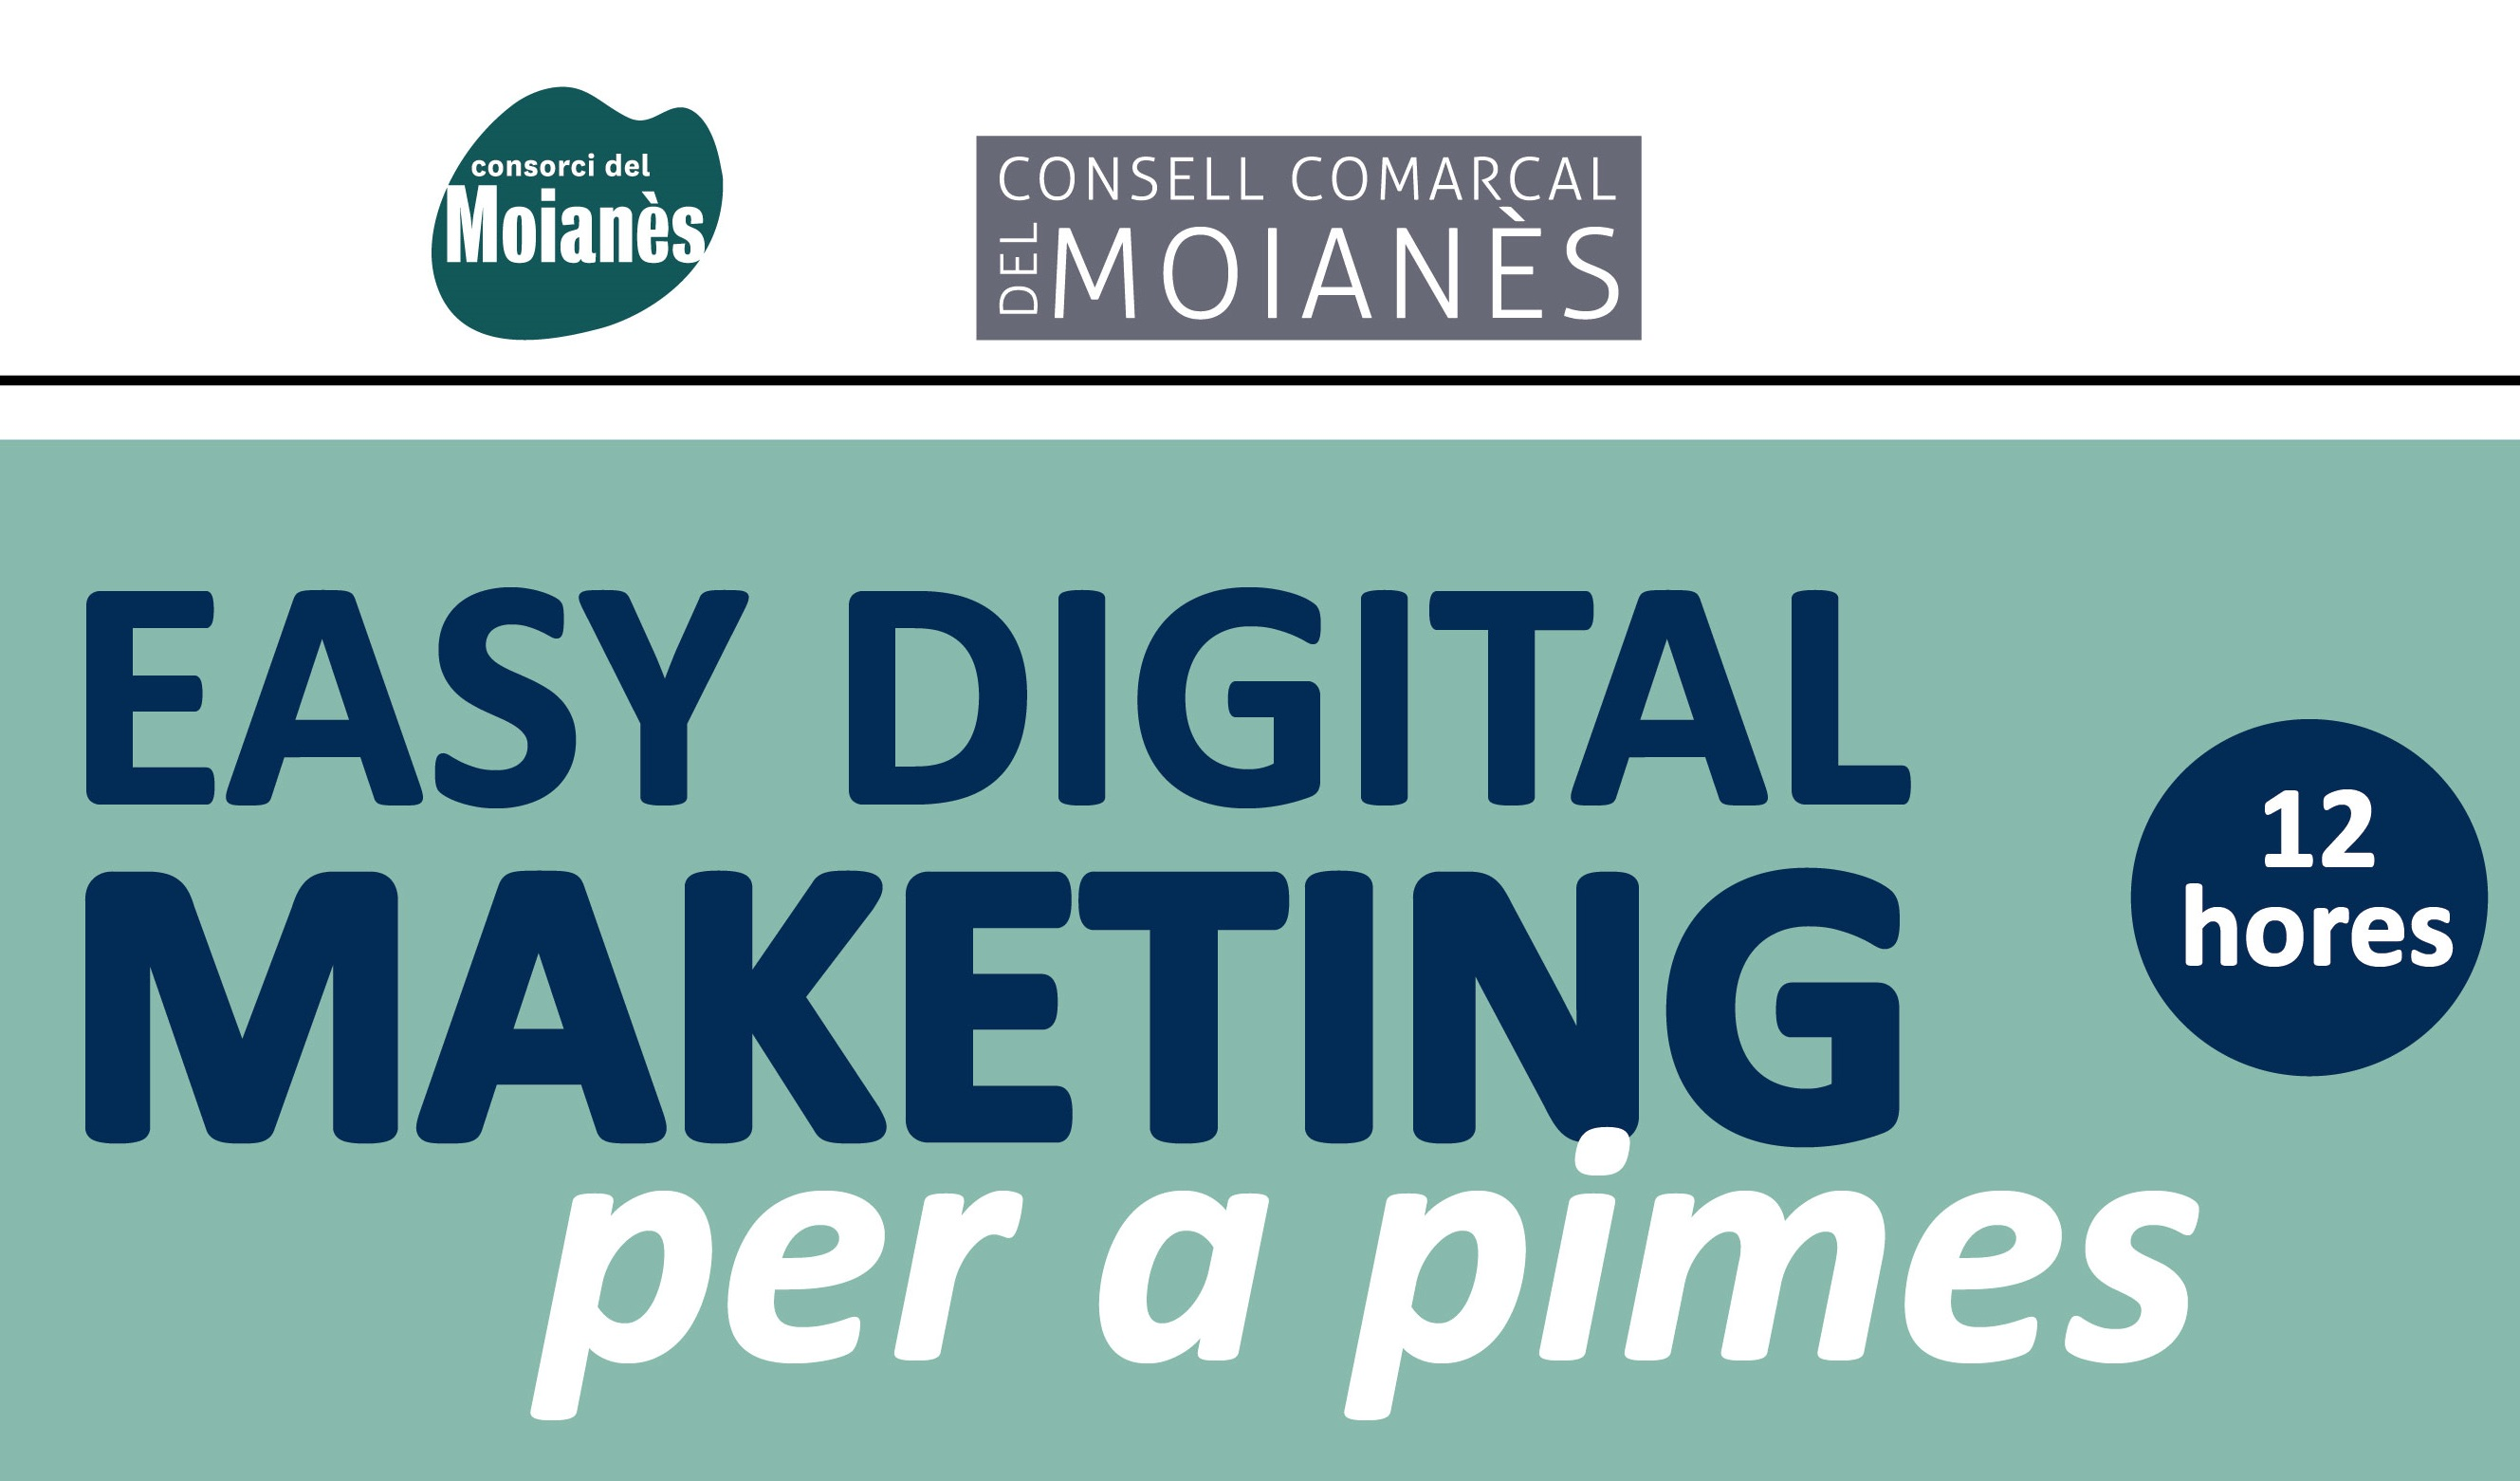 Curs Easy digital marketing per a pimes (12h)